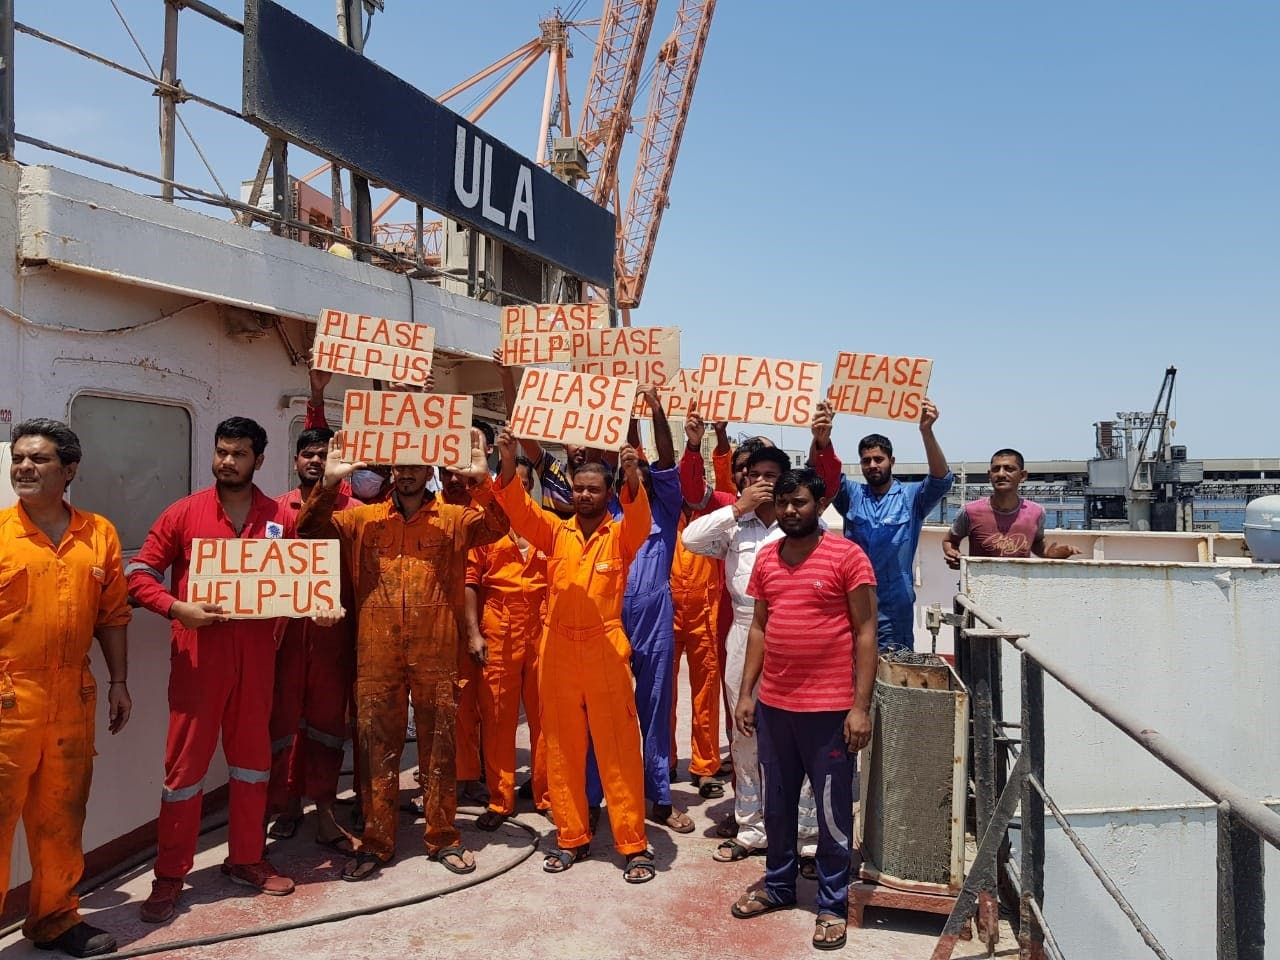 Onboard the vessel M/V Ula in Kuwait,19 abandoned seafarers went on hunger strike in protest over unpaid wages backdated for more than a year. (Supplied)